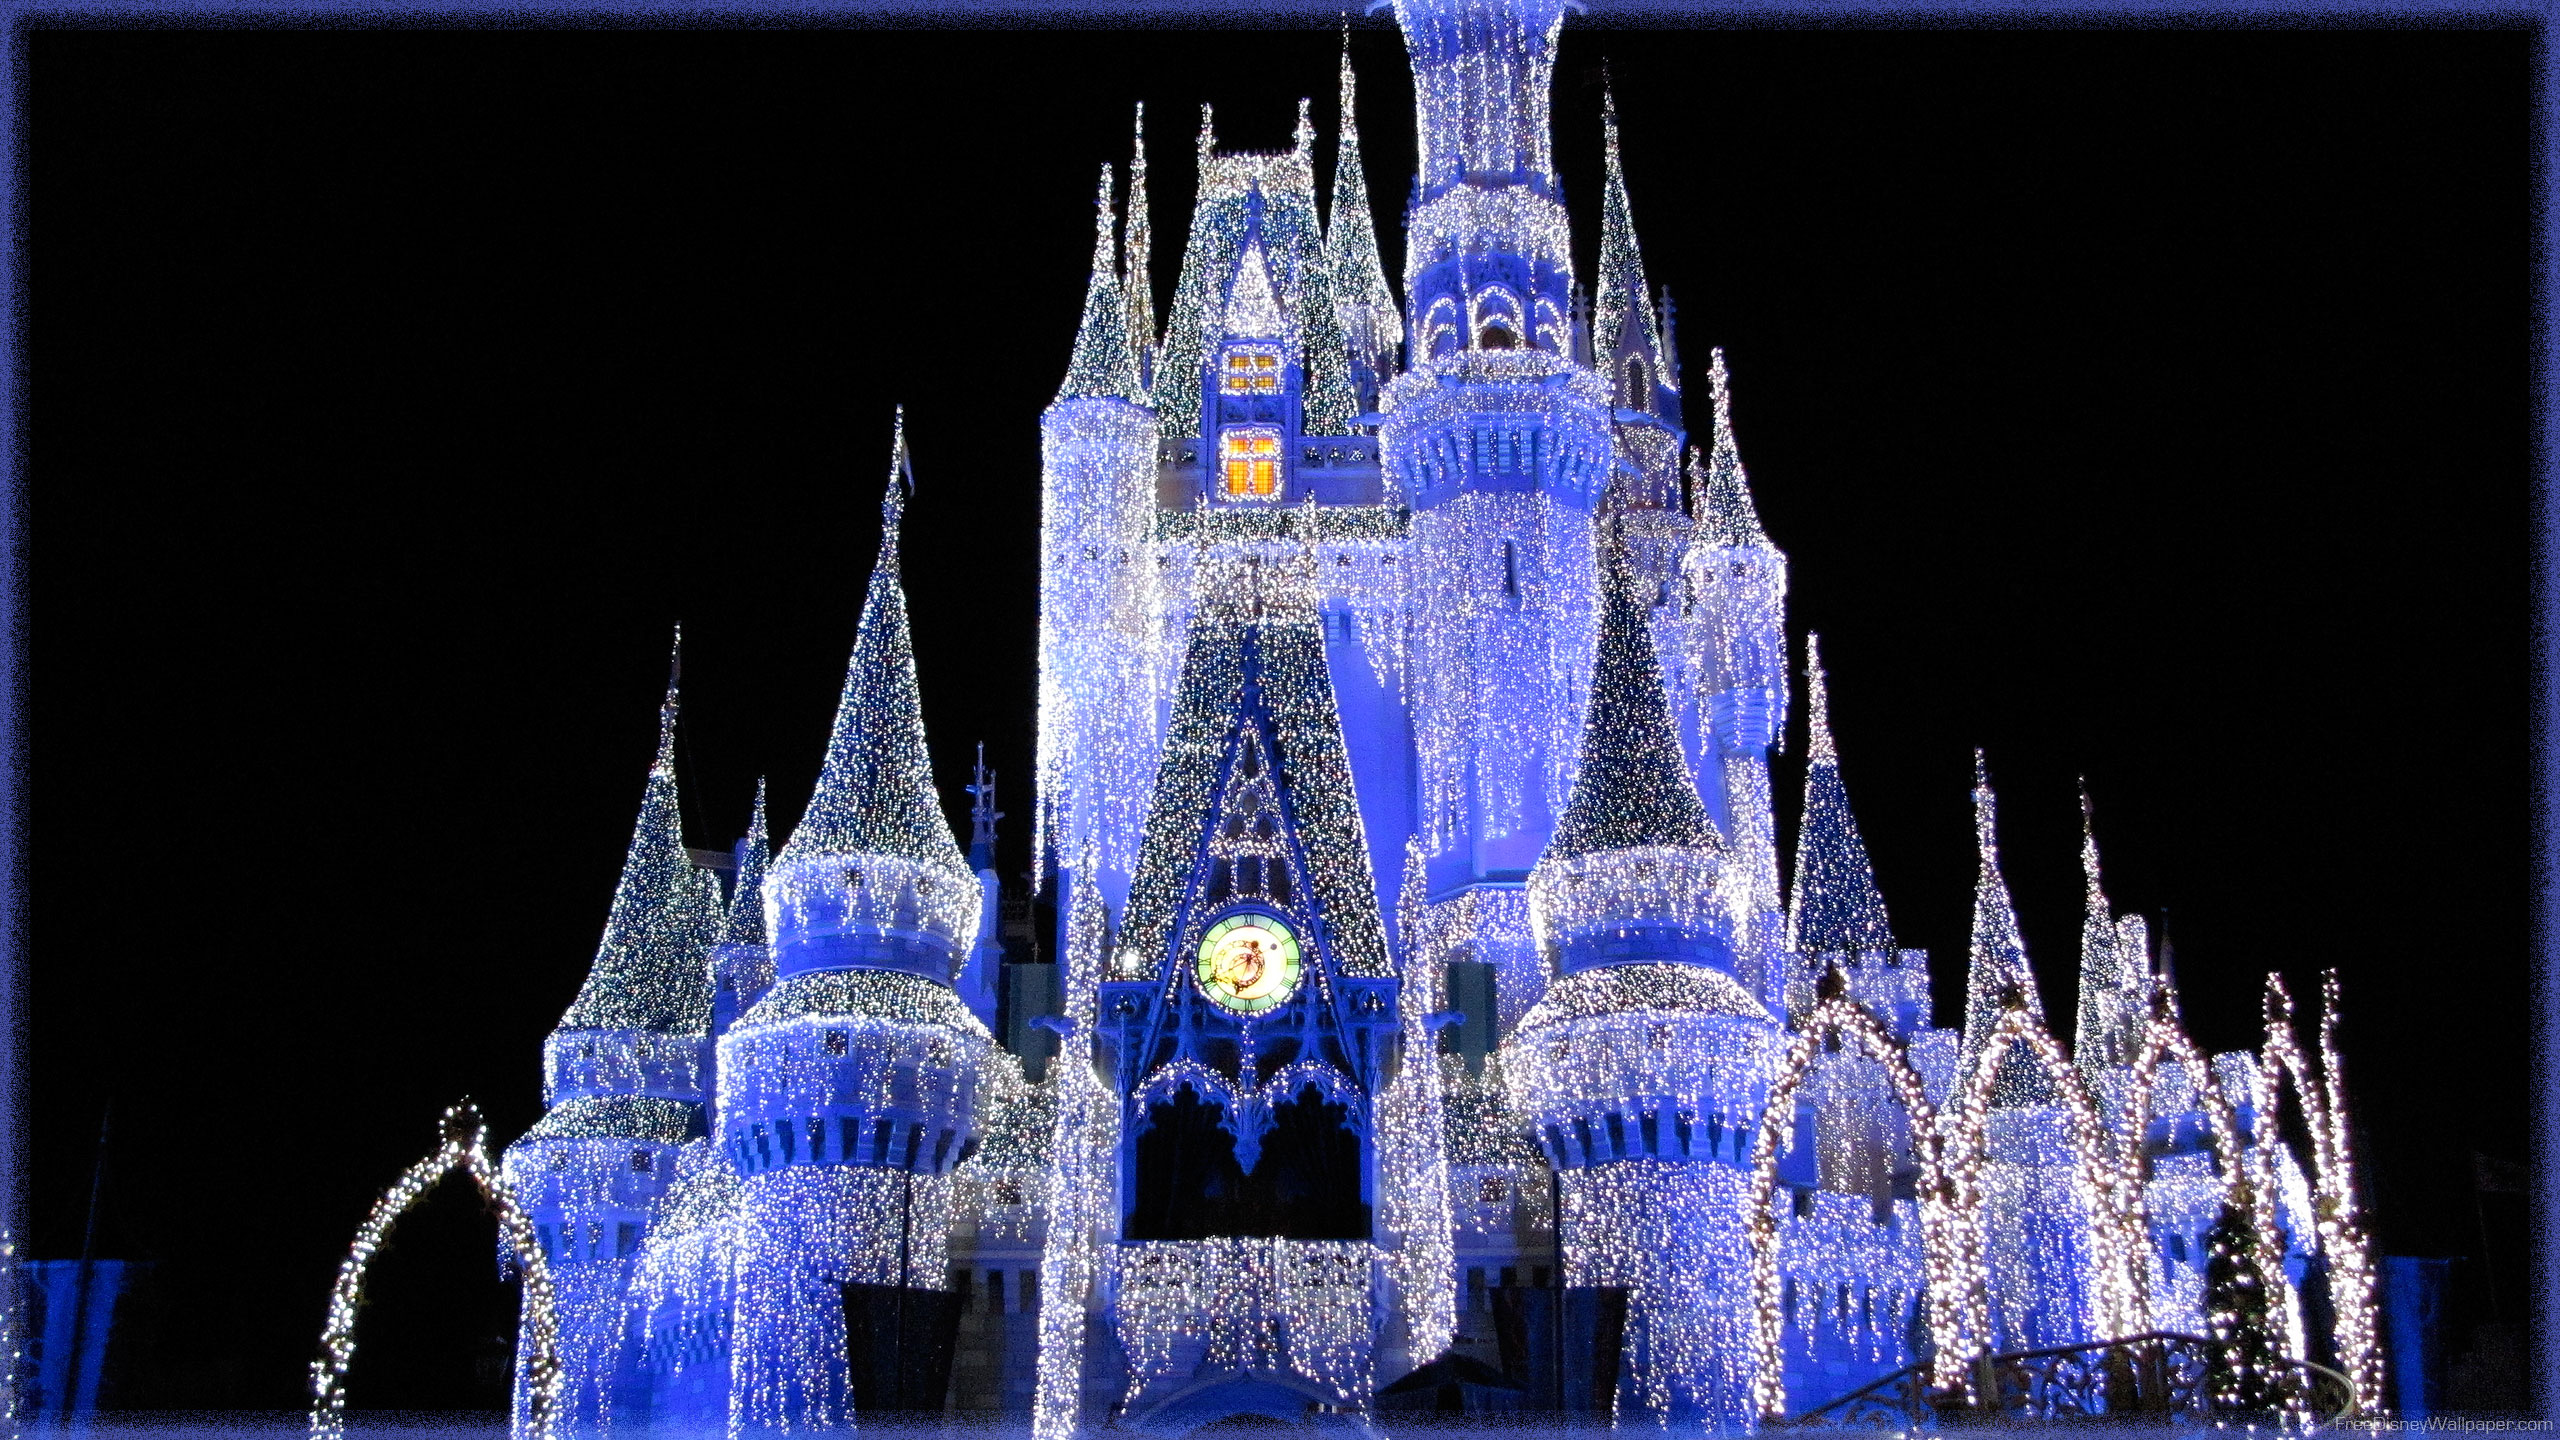 Disney Wallpaper Disney Wallpapers Cinderella Castle 2560x1440